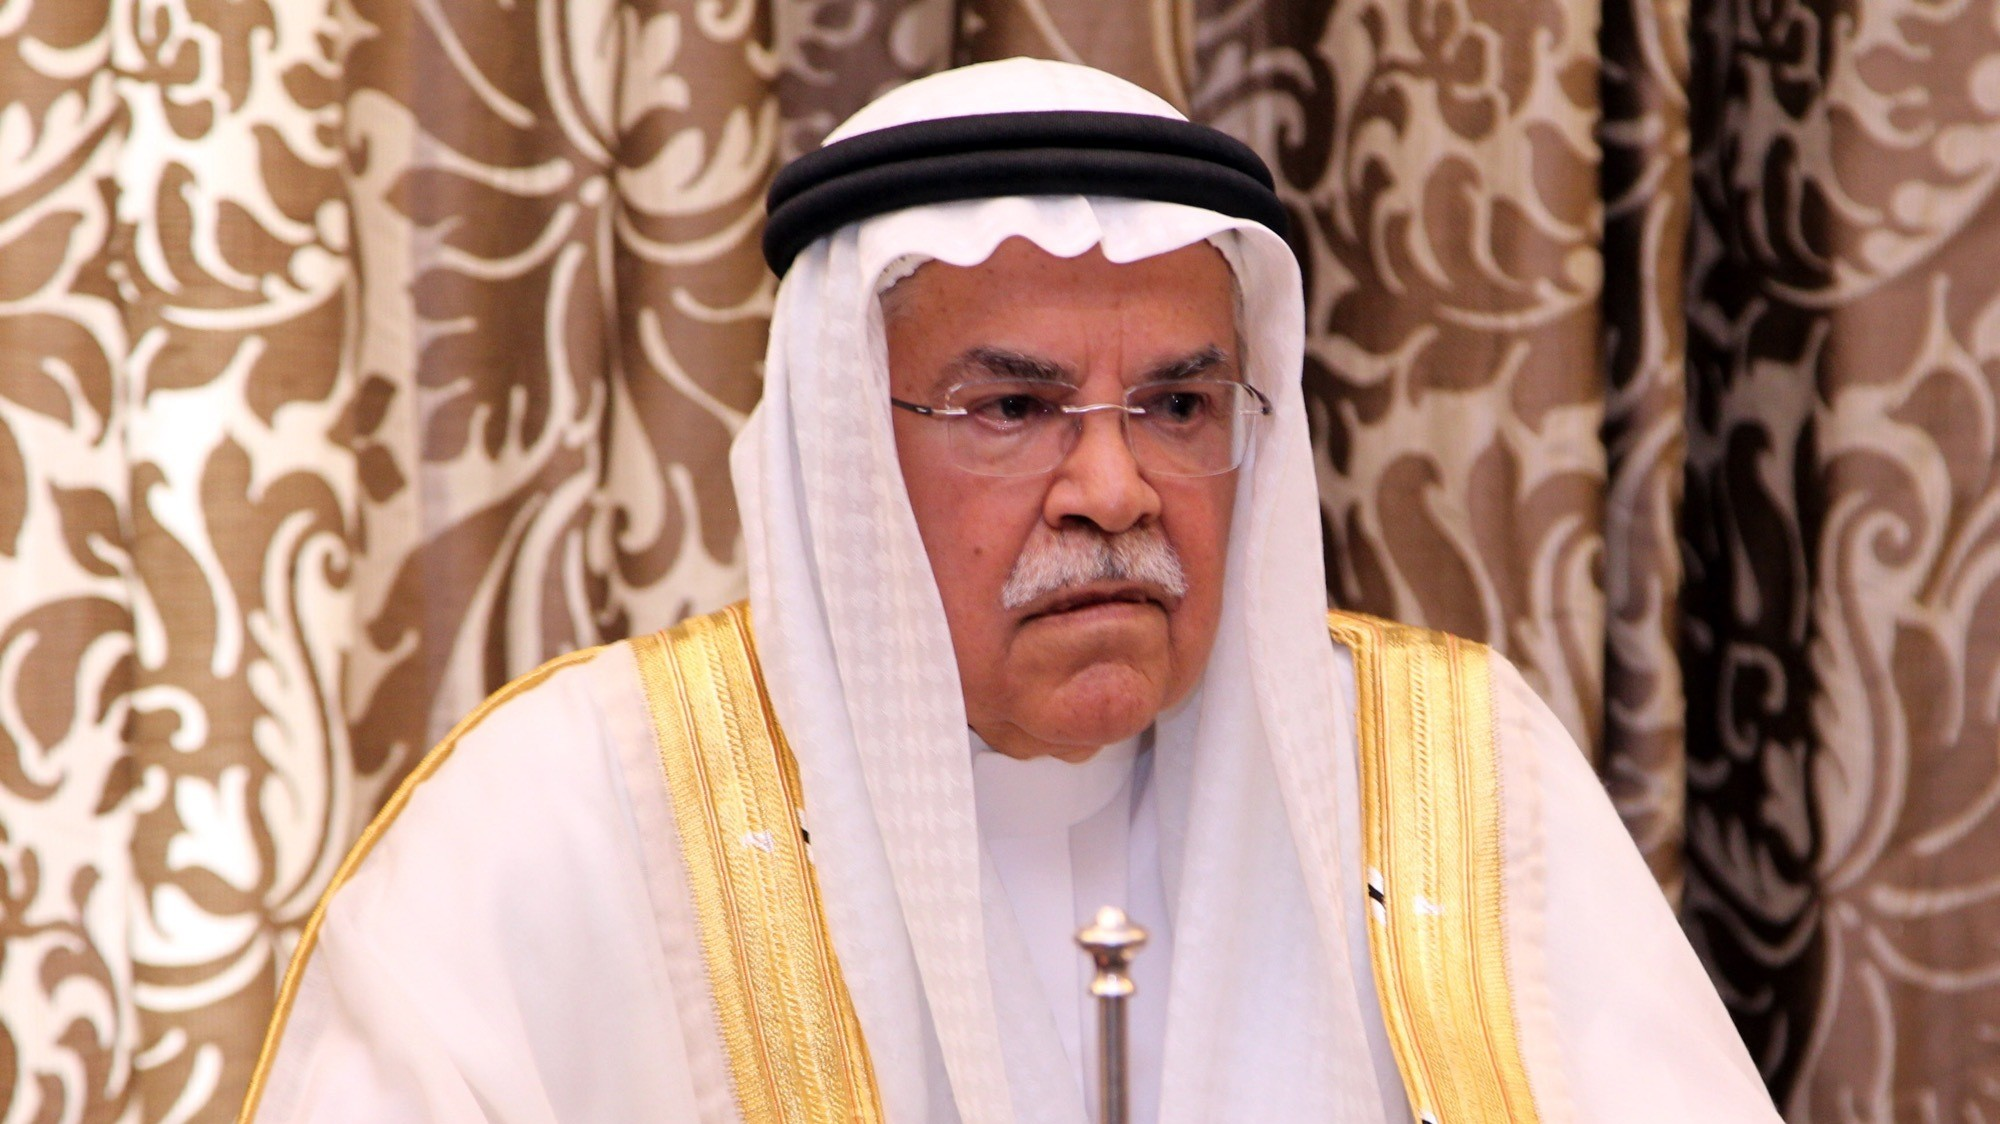 The Saudi King Just Fired the Guy Who's Been in Charge of the Country's Oil for 20 Years